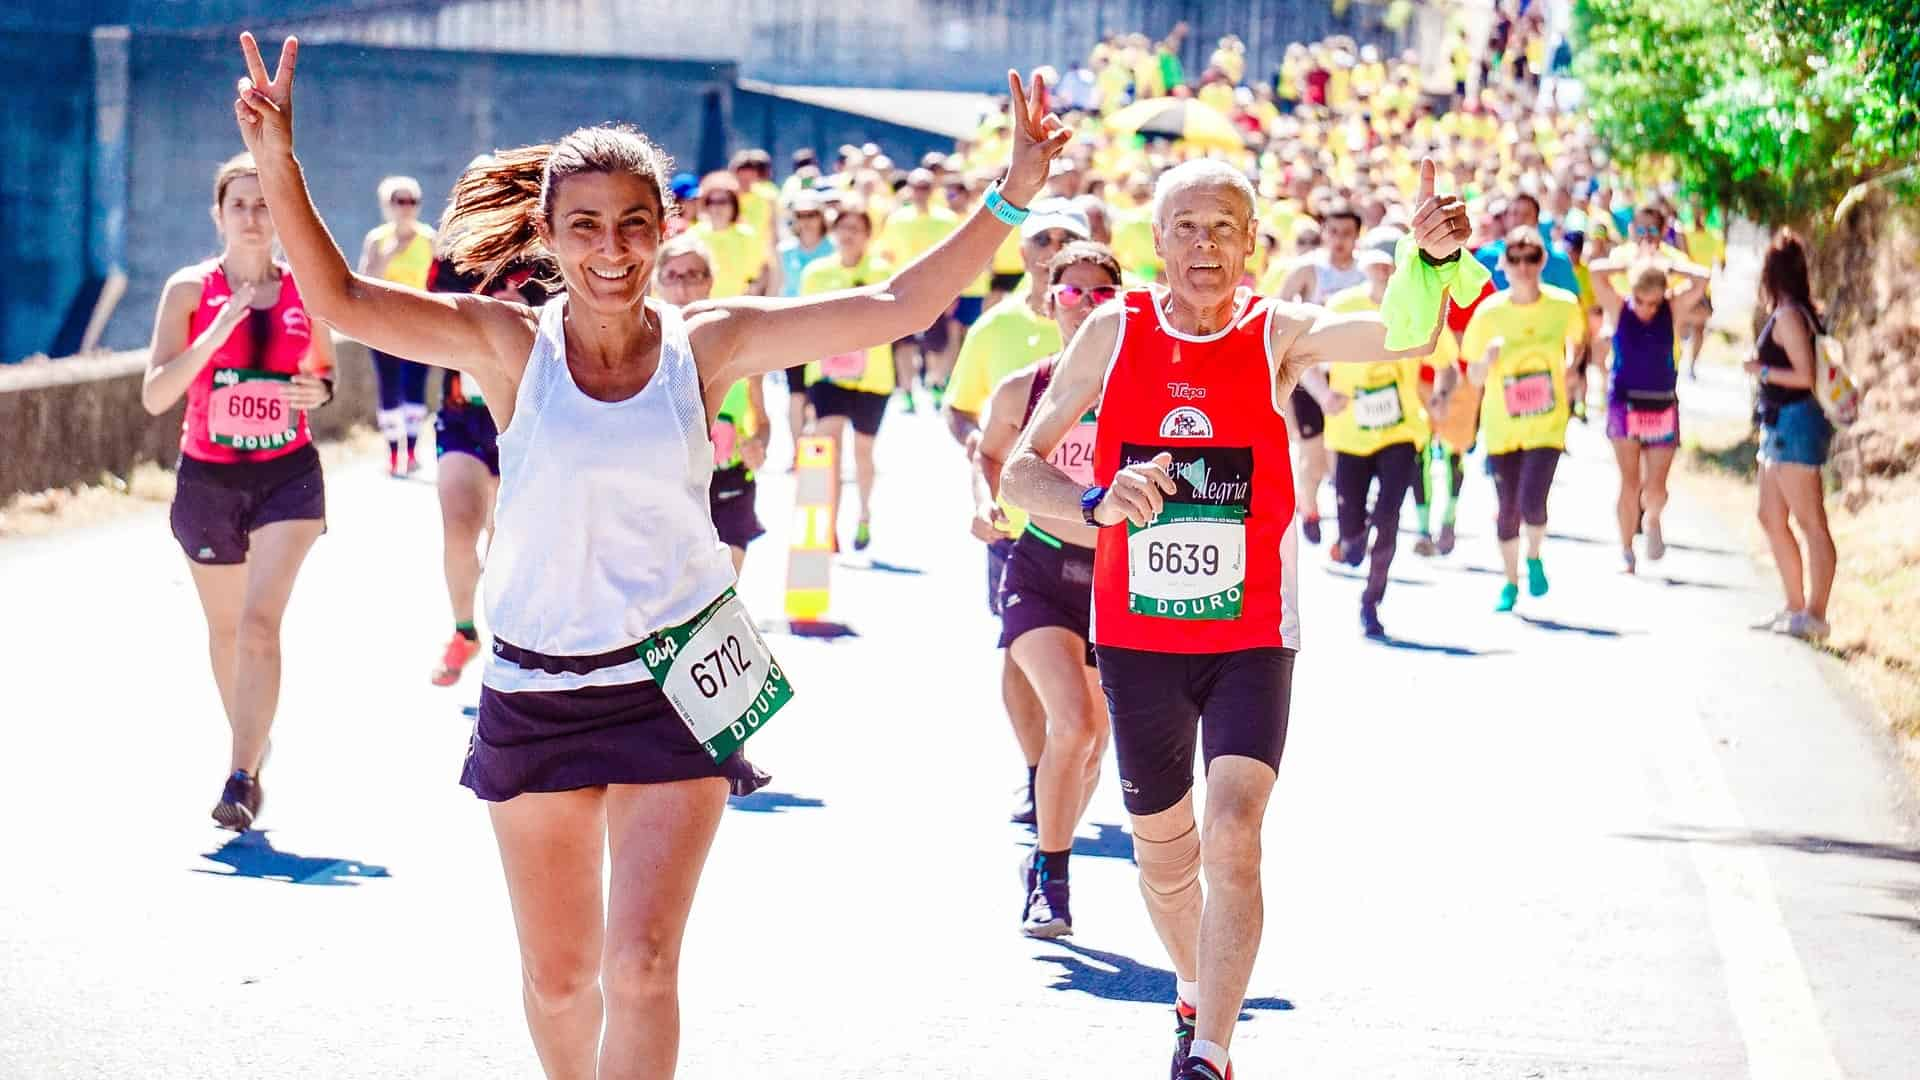 marathon-runners-waving-to-camera